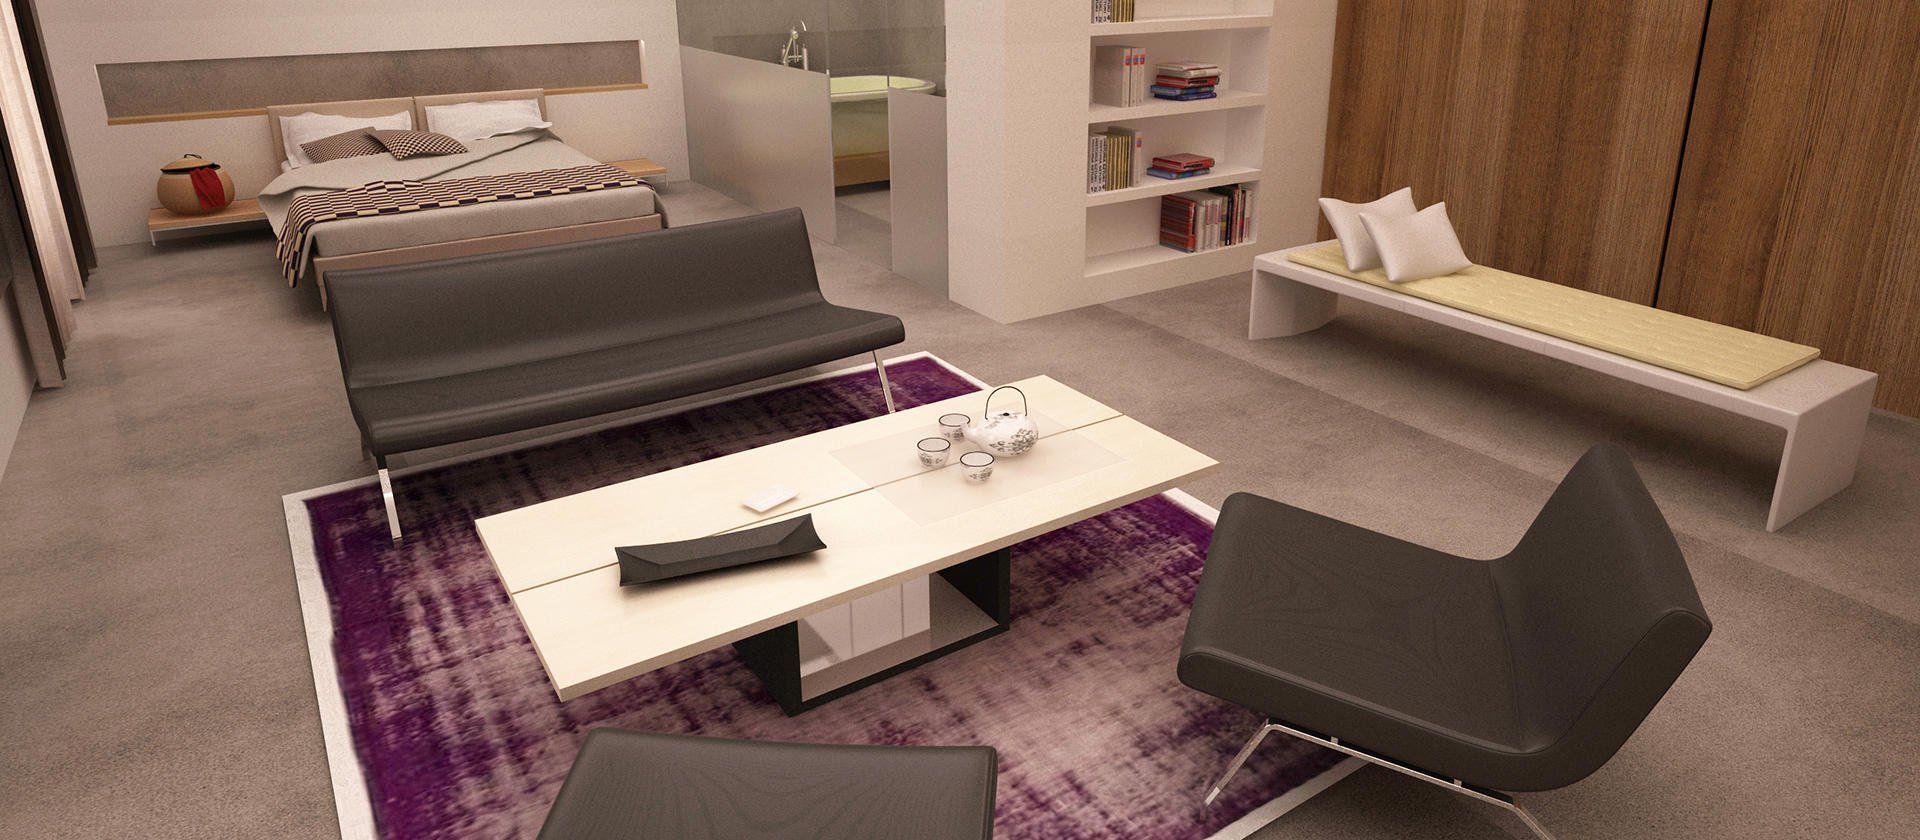 FIDI, Italy   Interior Design School In Florence   Design School   Masters,  Bachelors And Courses In English